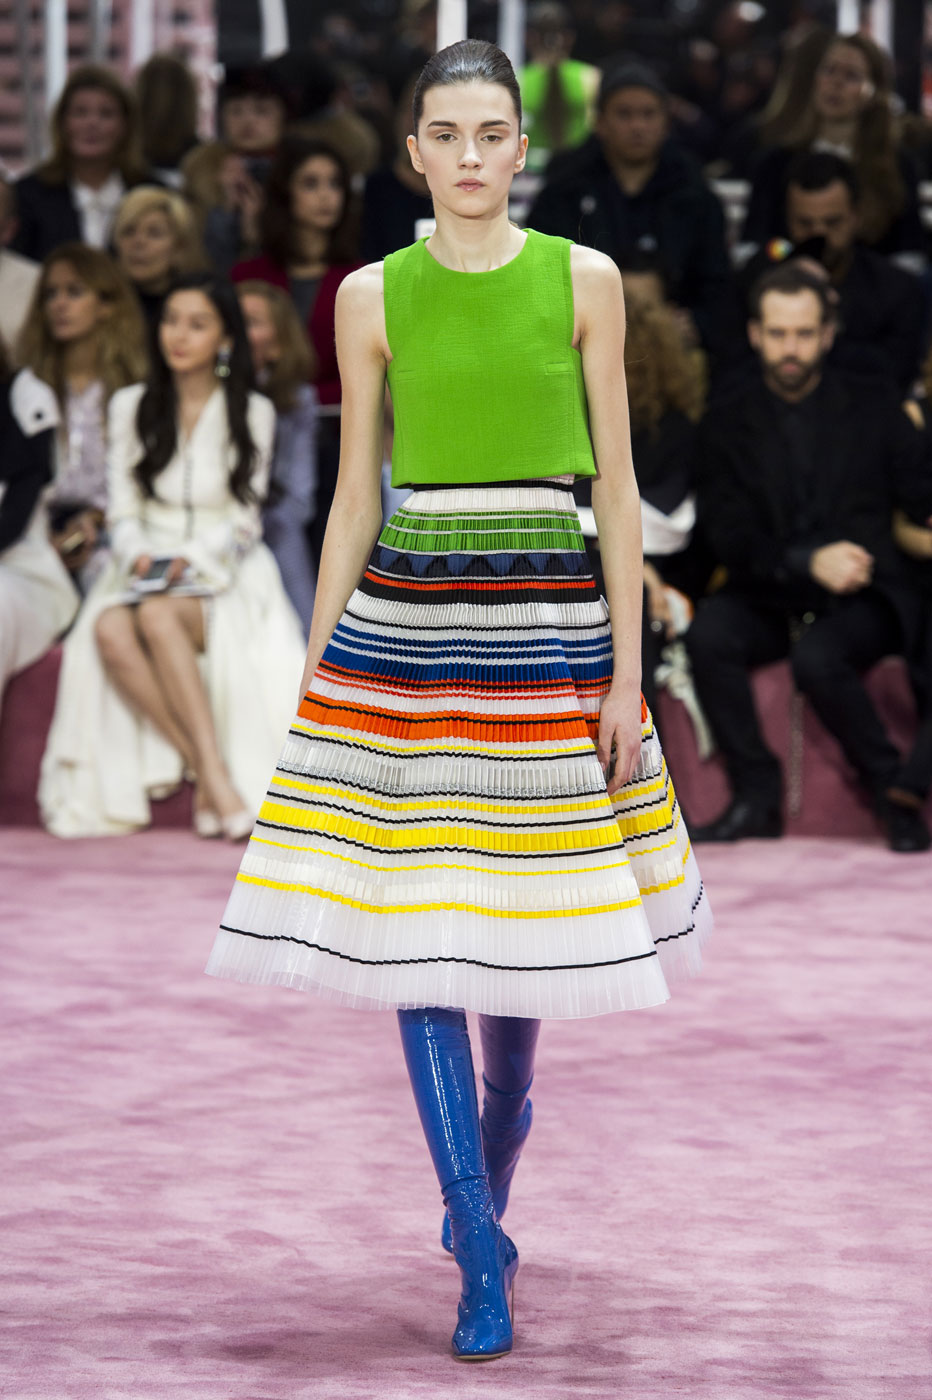 Christian-Dior-fashion-runway-show-haute-couture-paris-spring-summer-2015-the-impression-092